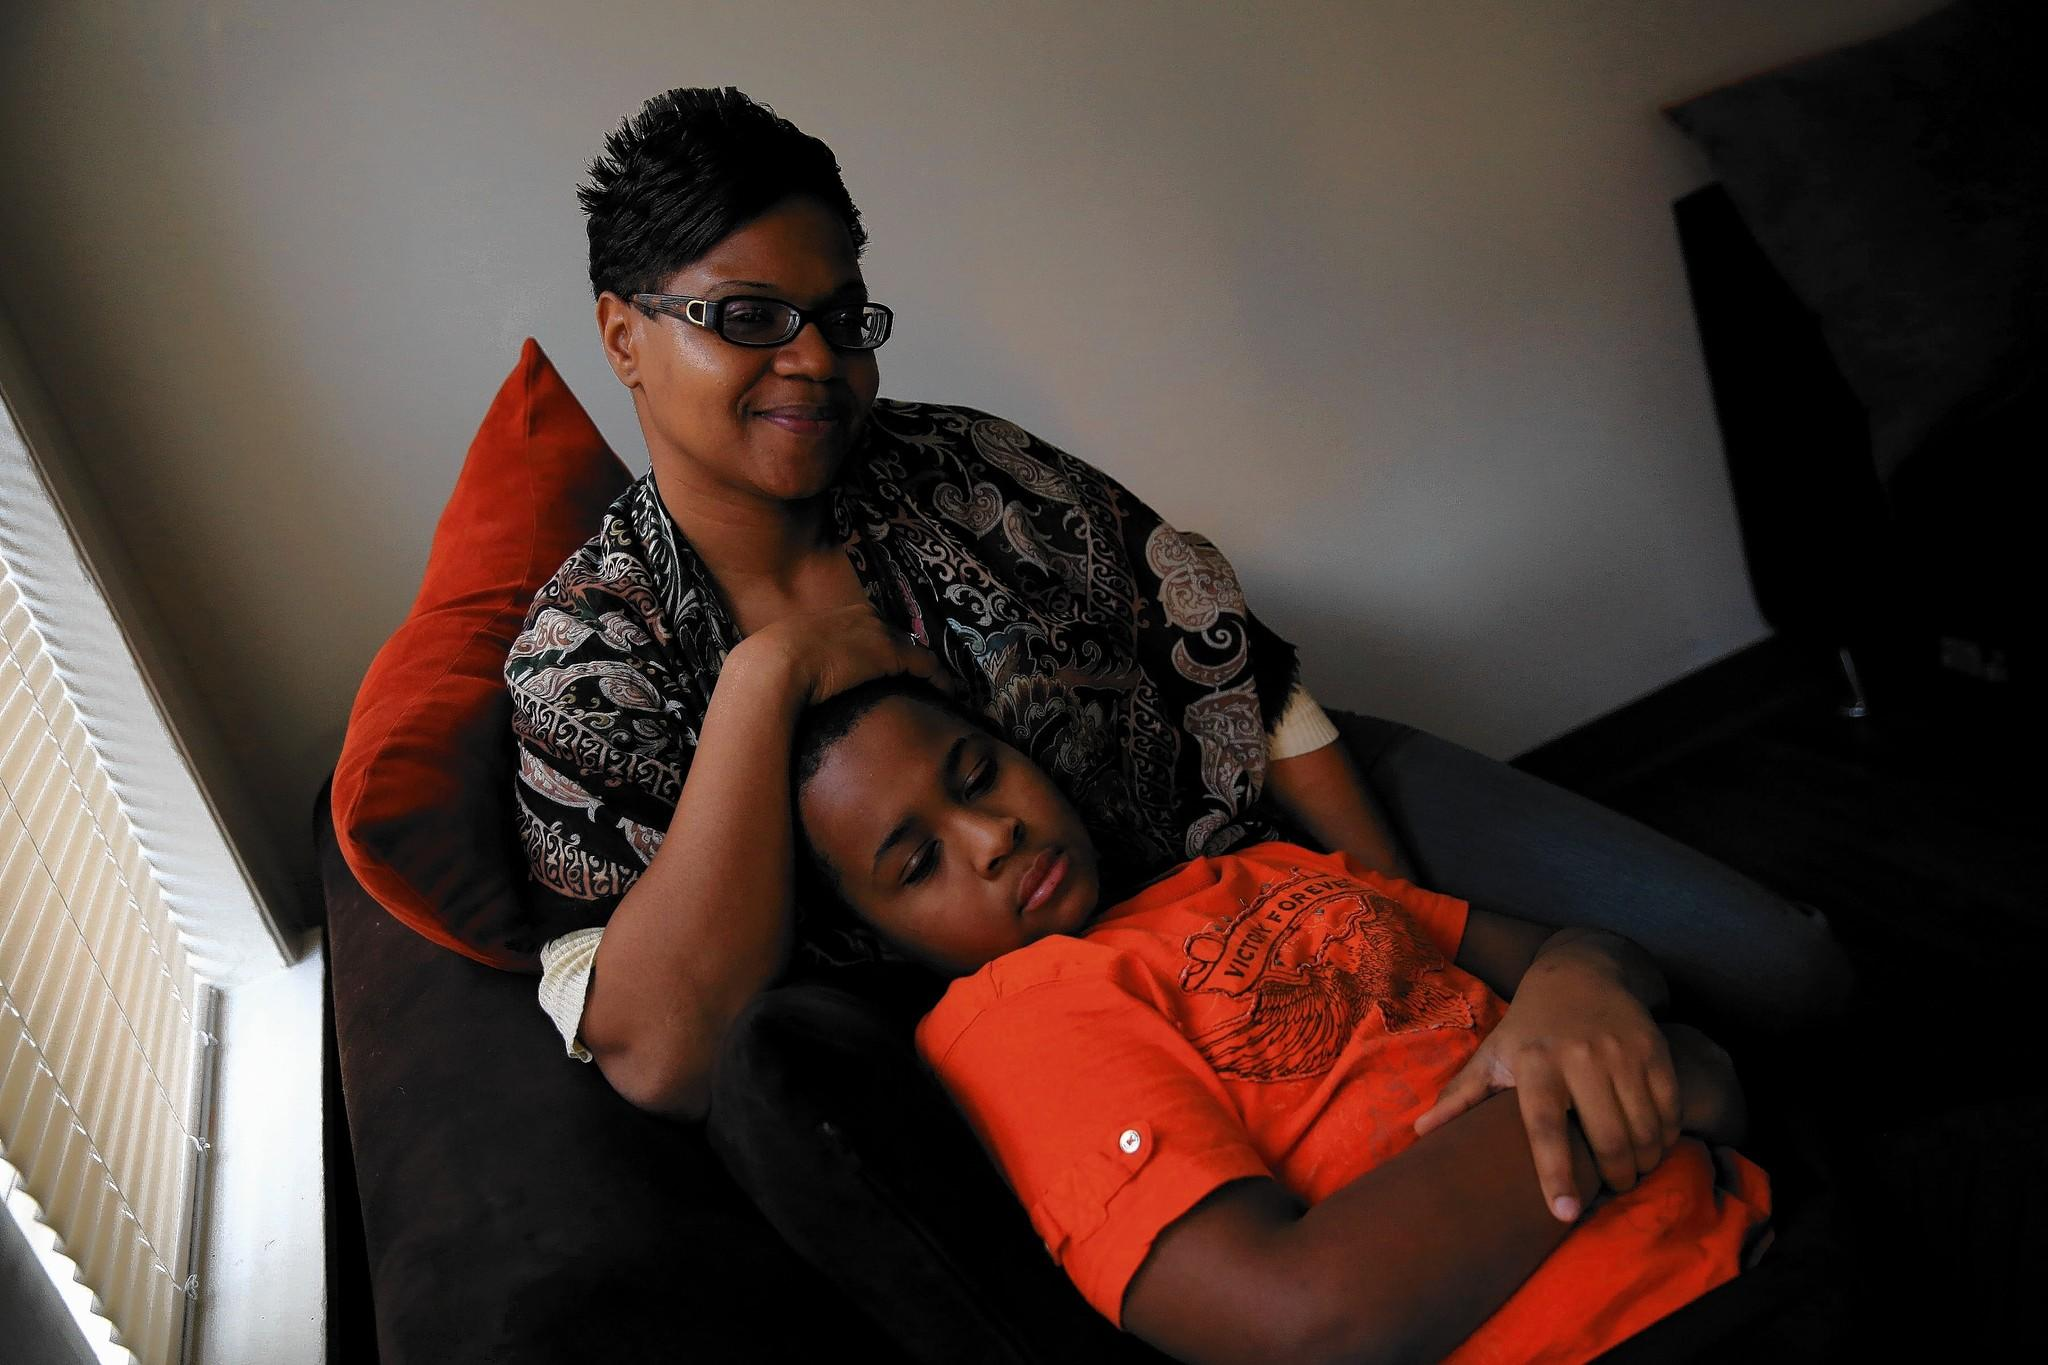 Tawana Ward had been receiving $300 a week after losing her job at Robert Morris University in March.